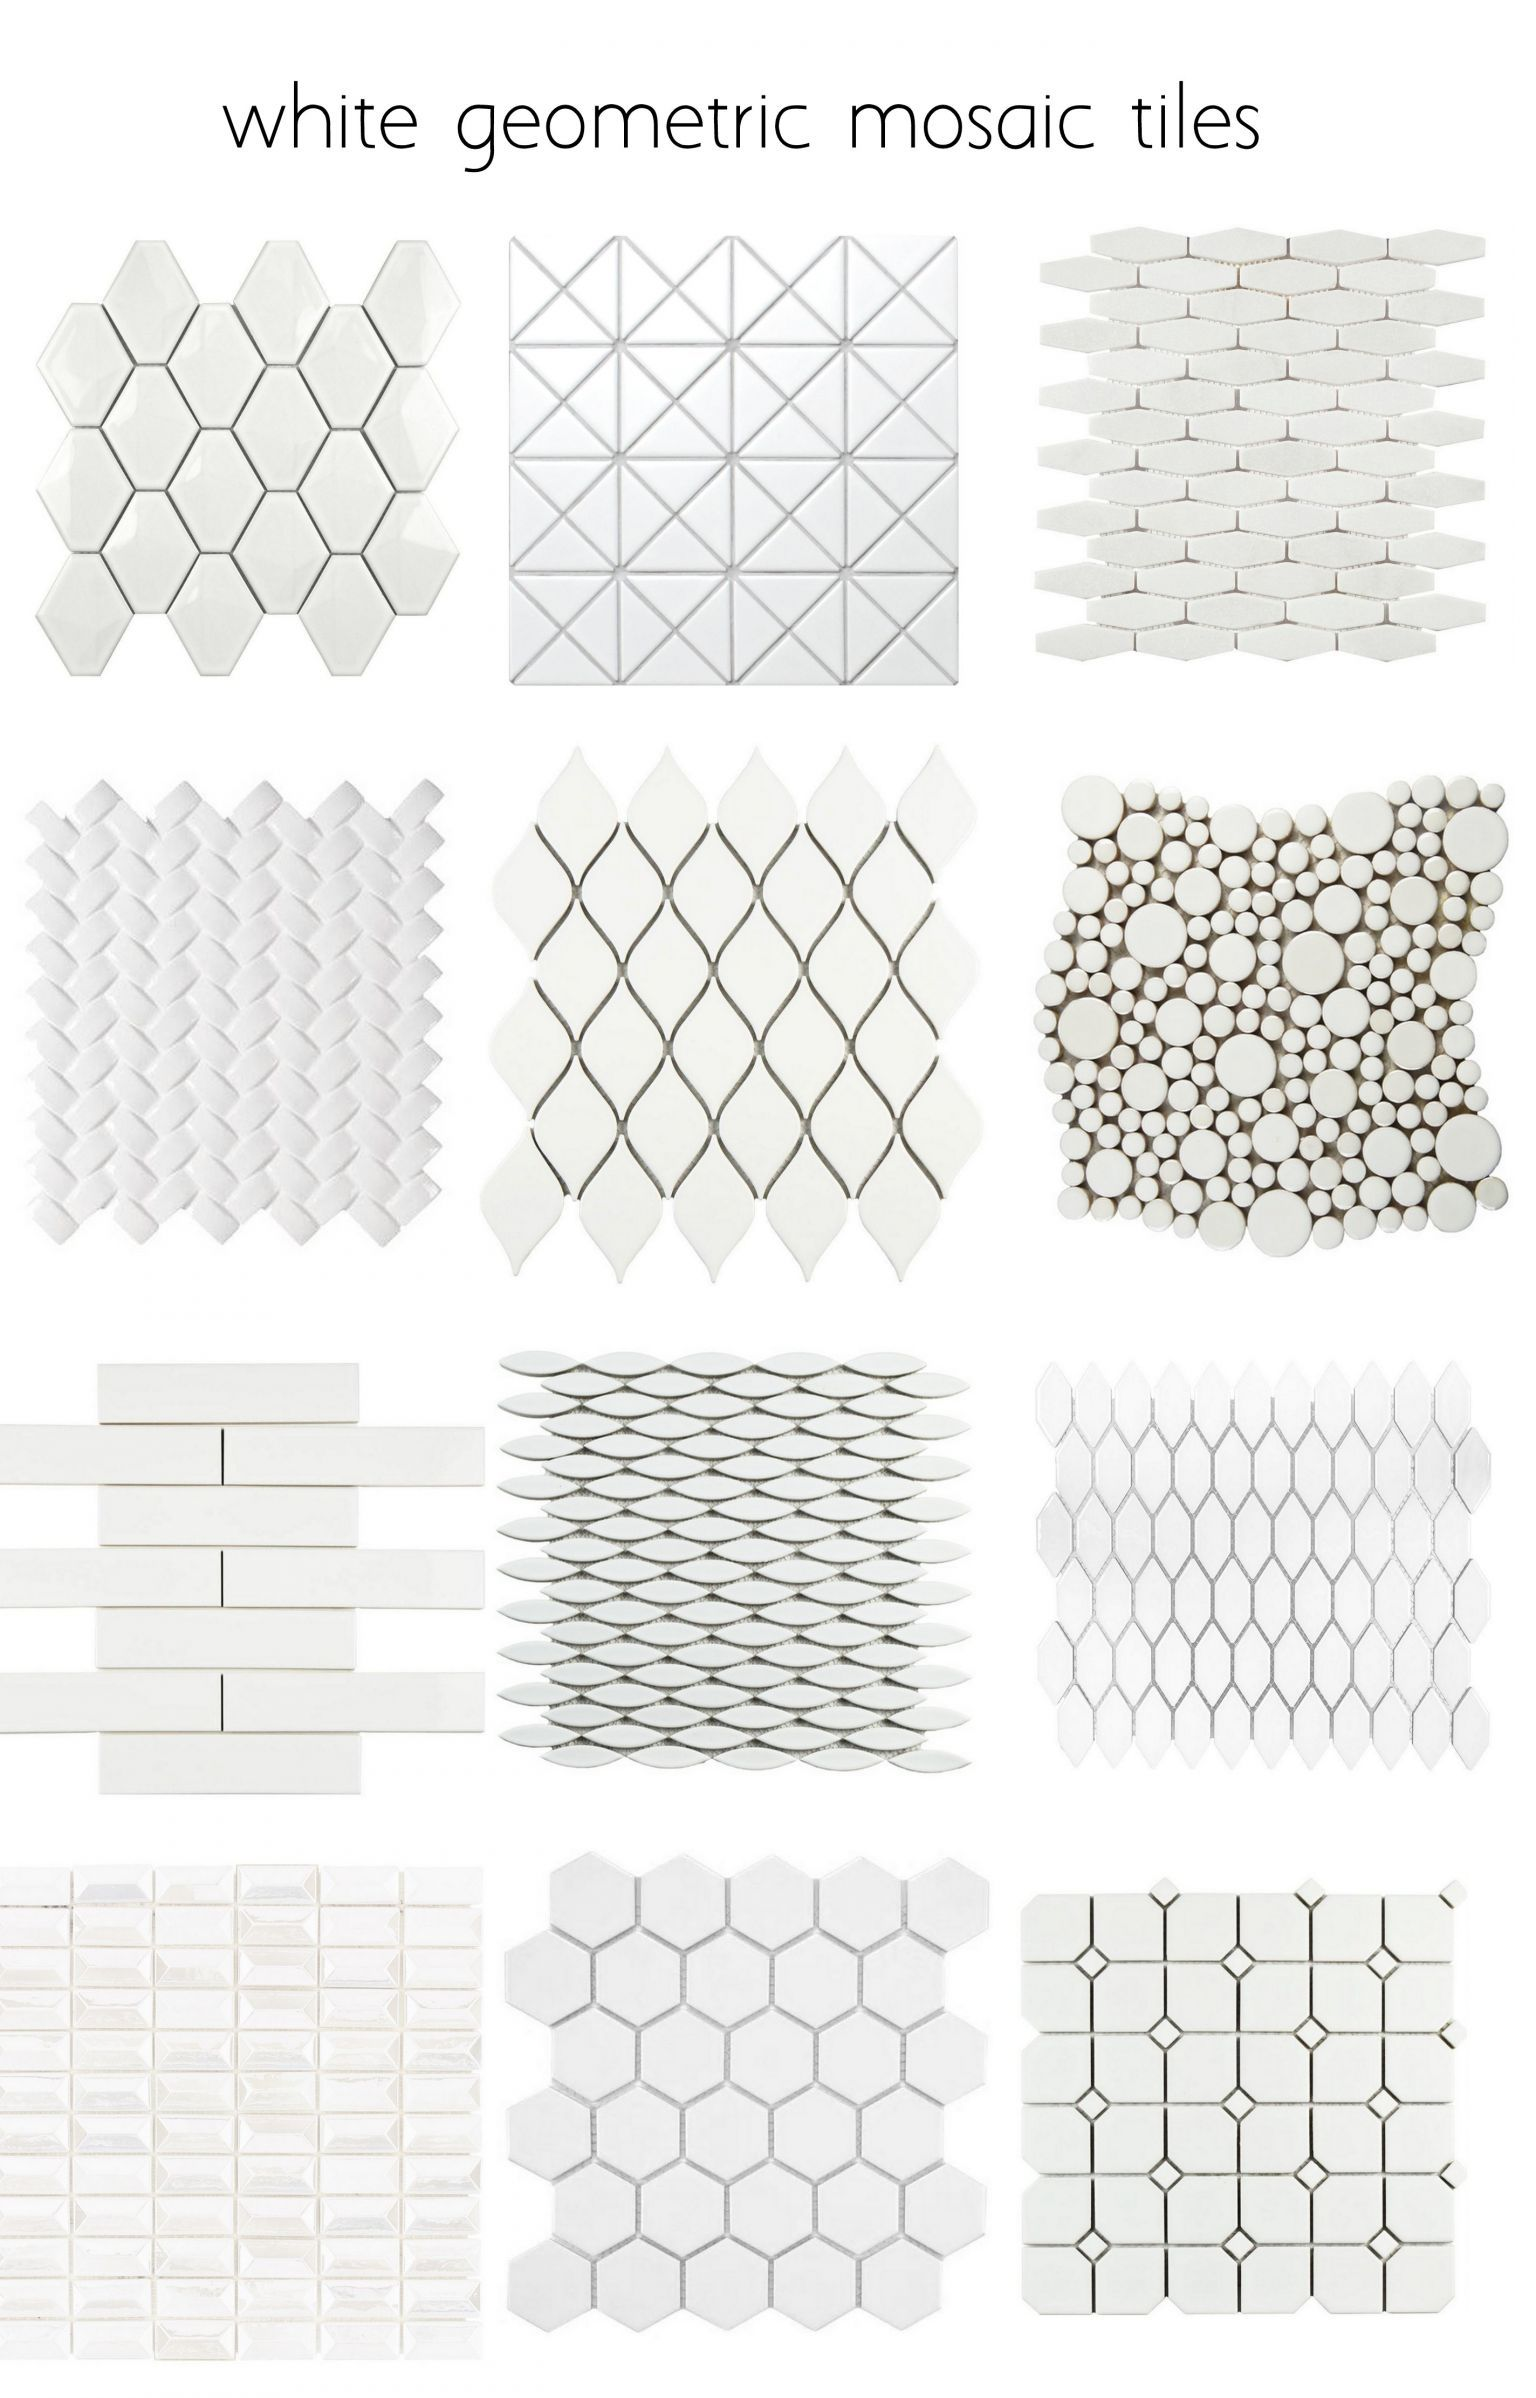 white-geometric-tiles - Many more patterns | Polymer Textures Tools ...